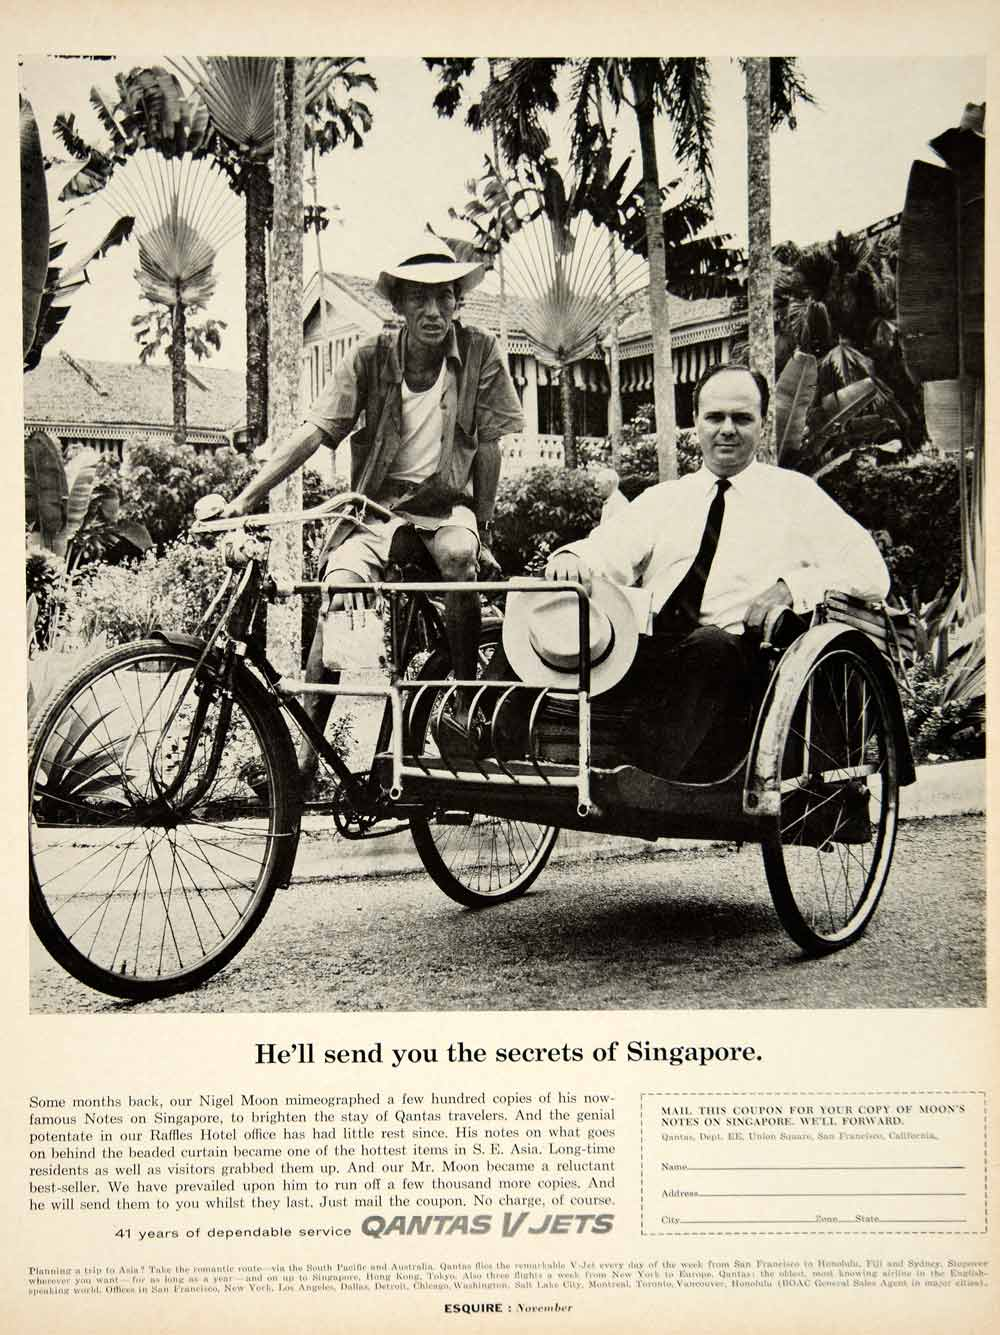 1962 Ad Qantas V Jets Australian Airlines Trishaw Bicycle Singapore Nigel YMM5